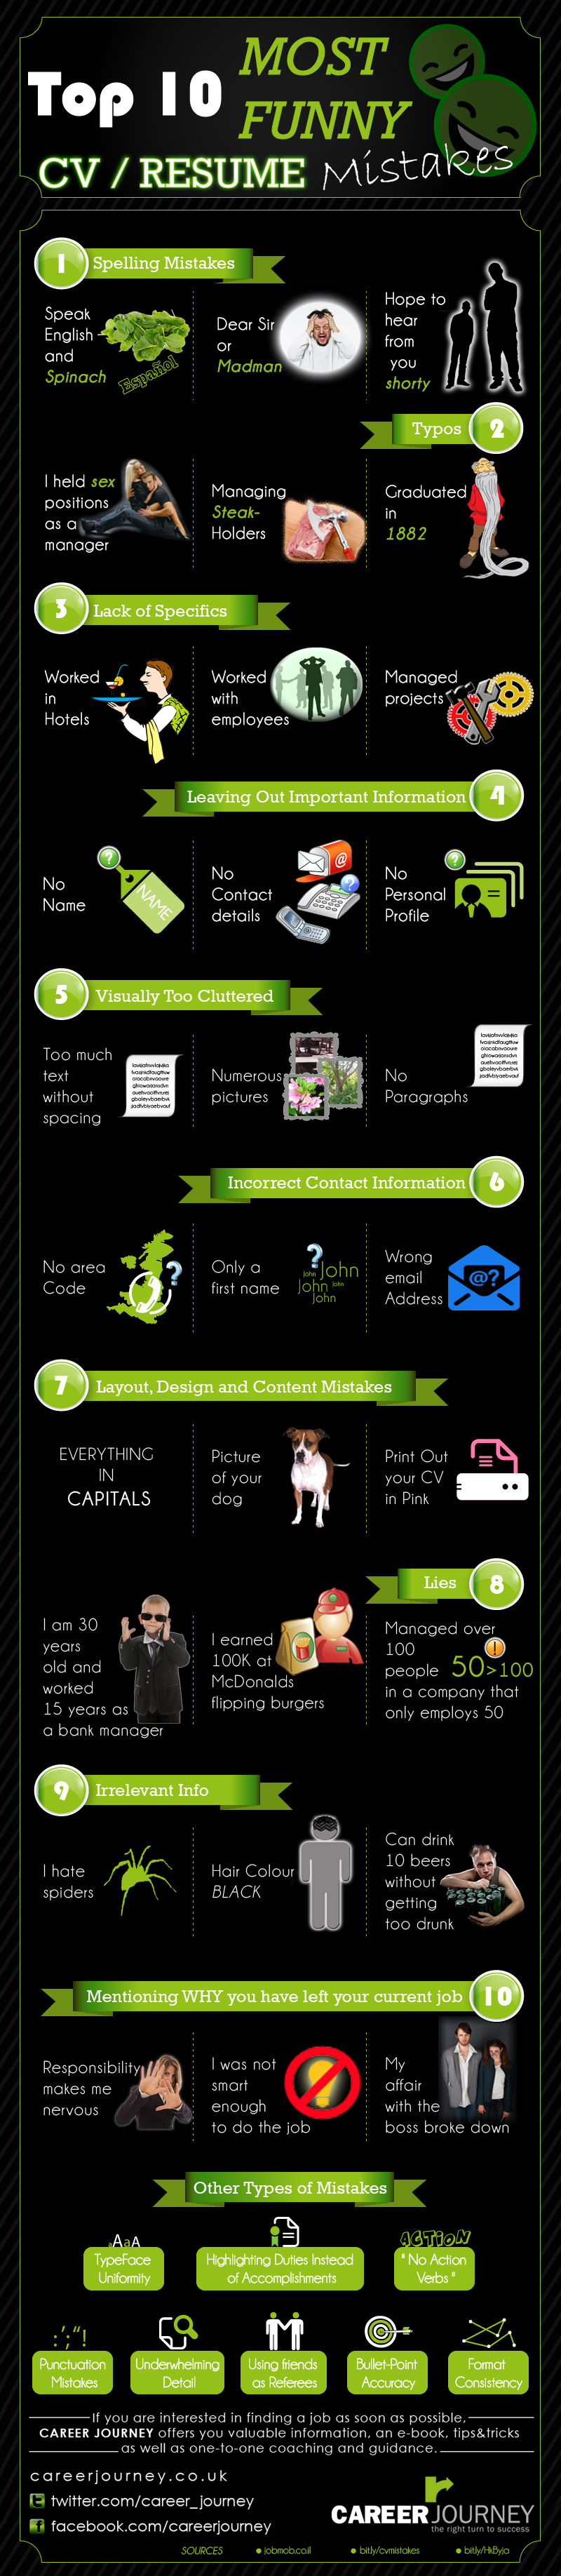 best images about cv resume ideas creative 17 best images about cv resume ideas creative creative resume and online resume